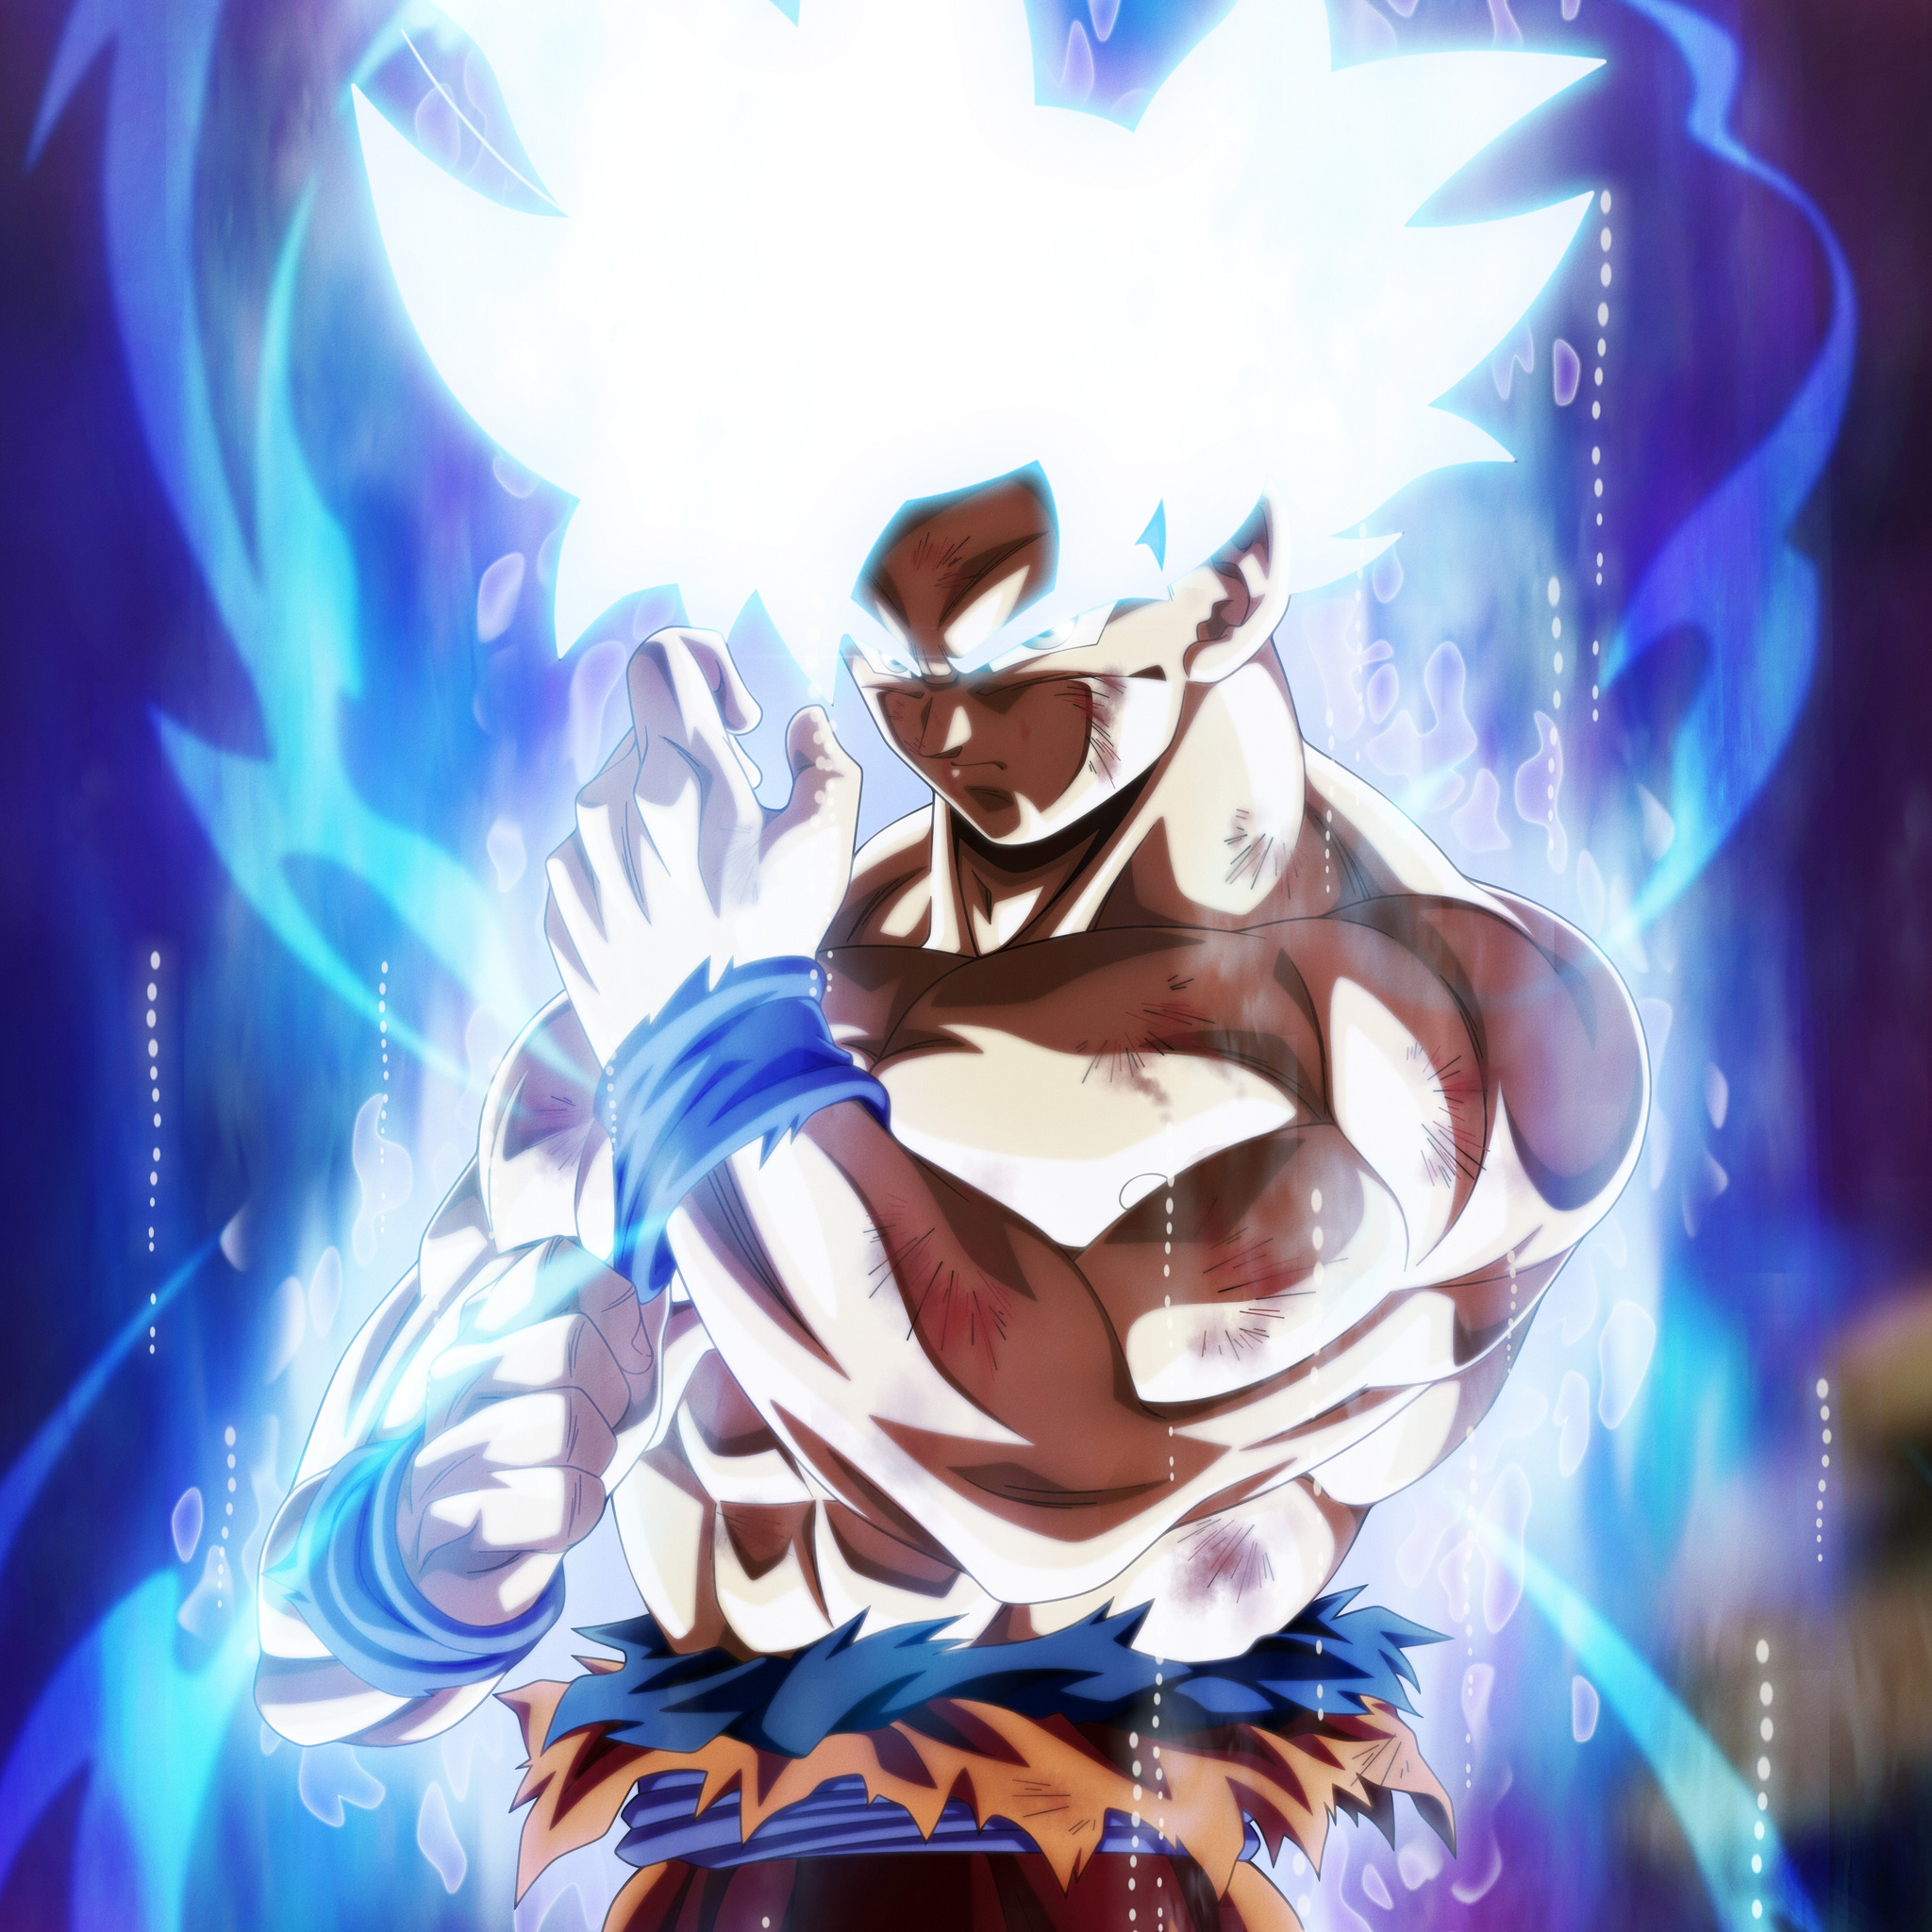 Dragon Ball Super Christmas Wallpaper: 2048x2048 Goku Dragon Ball Super Anime 5k Fan Made Ipad